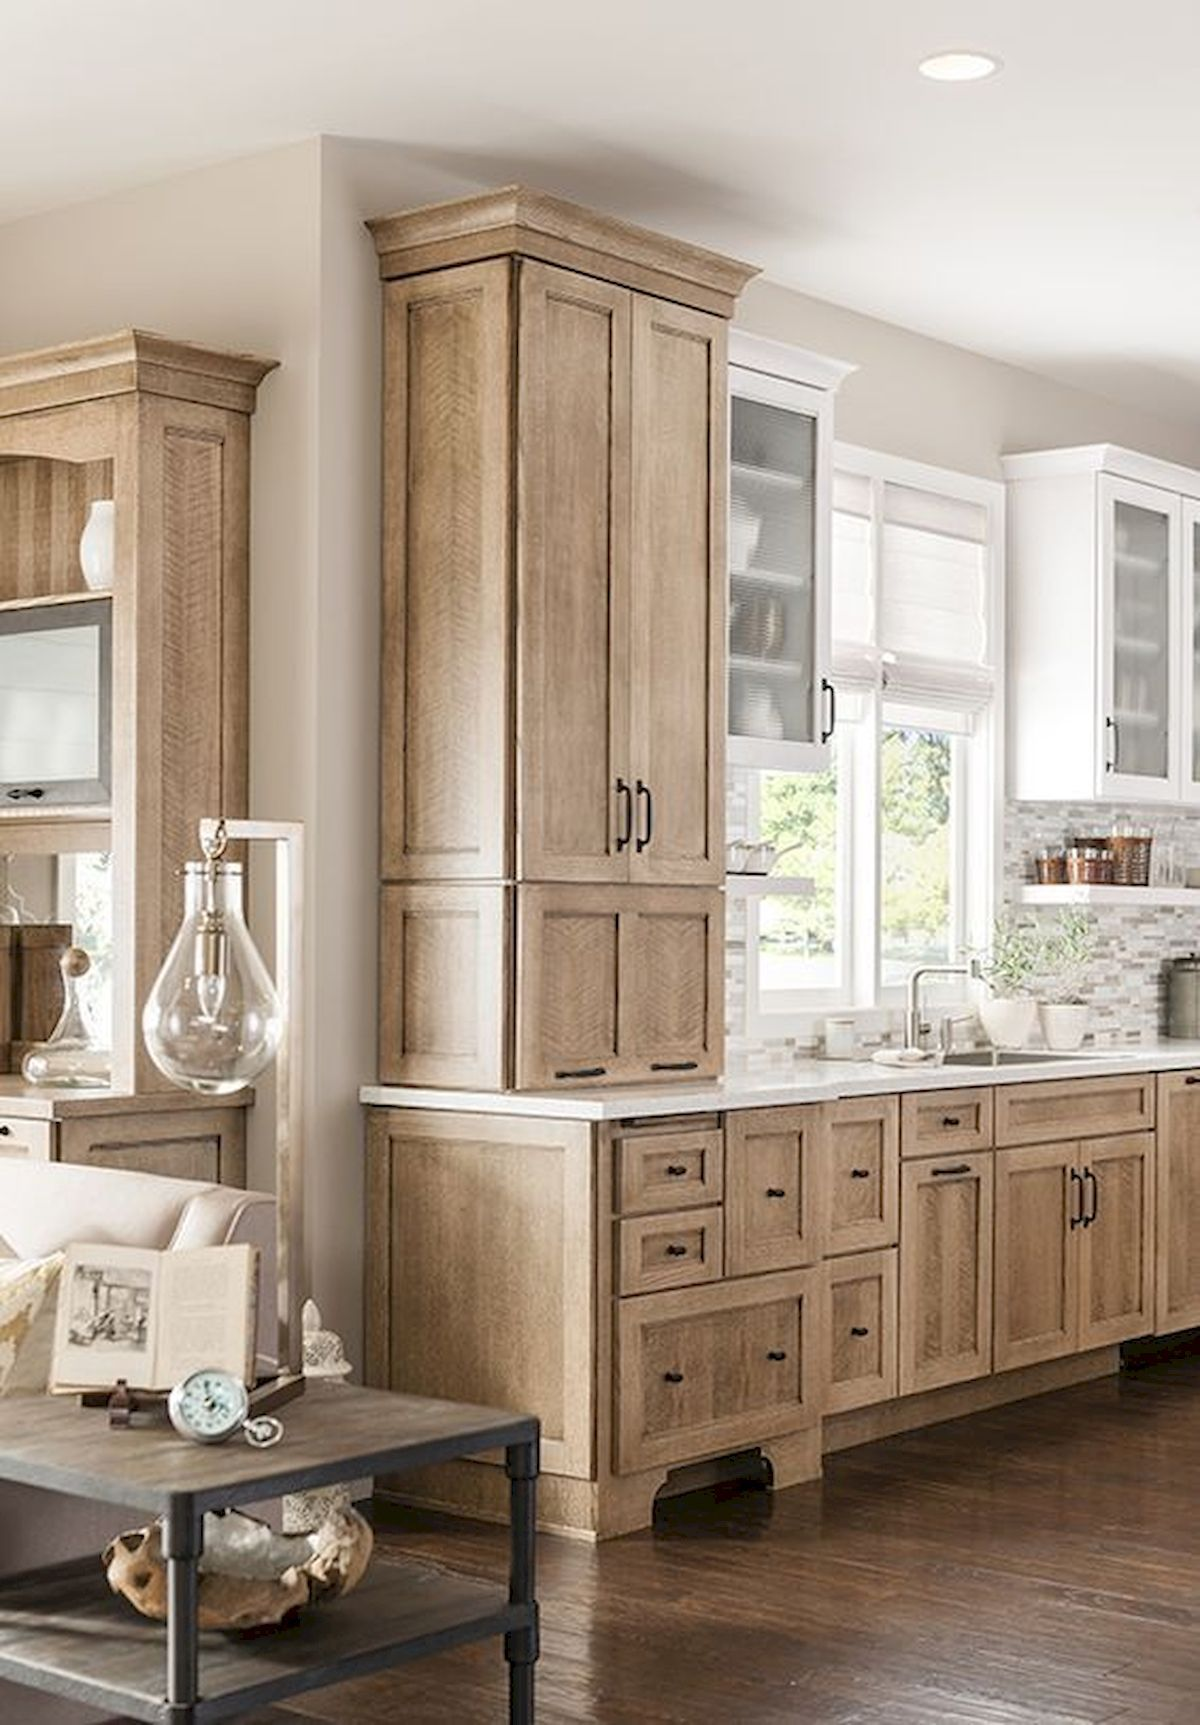 Kitchen Design Ideas For A Great Looking Kitchen